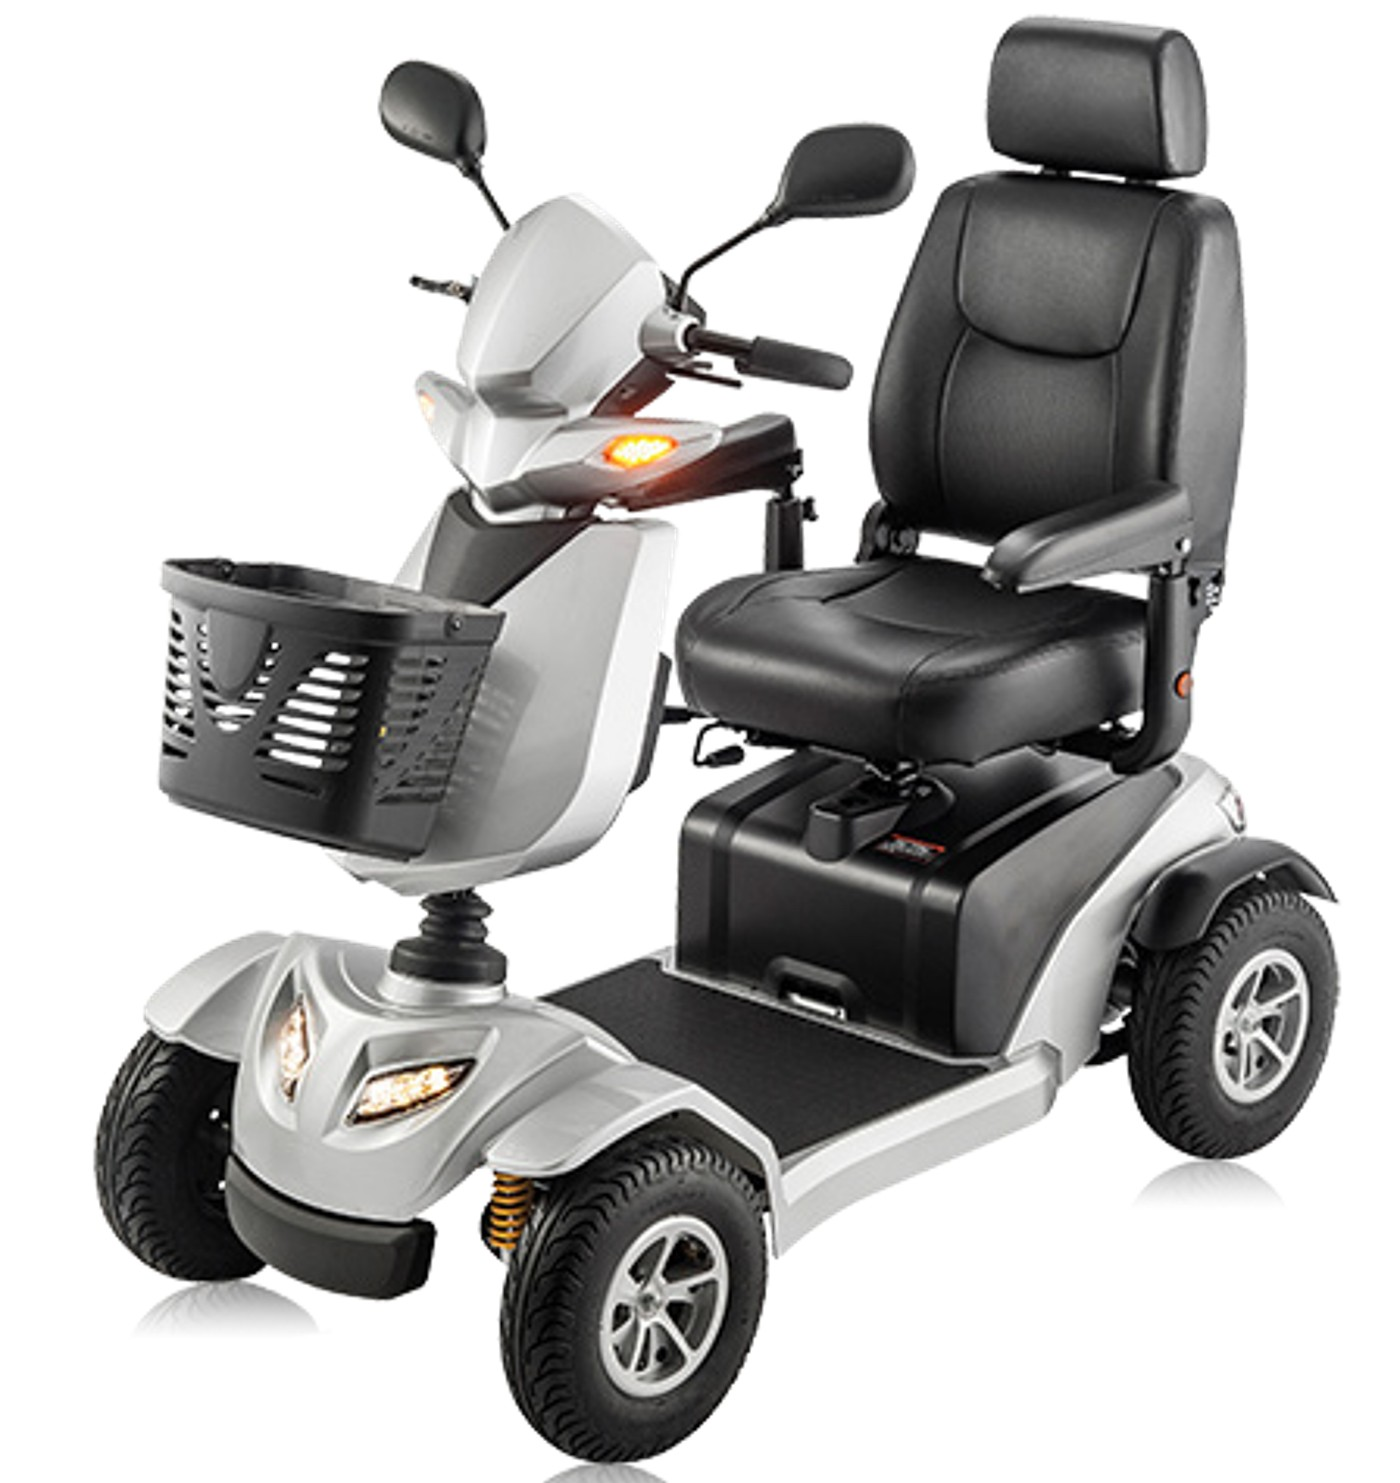 Interceptor mobility scooter